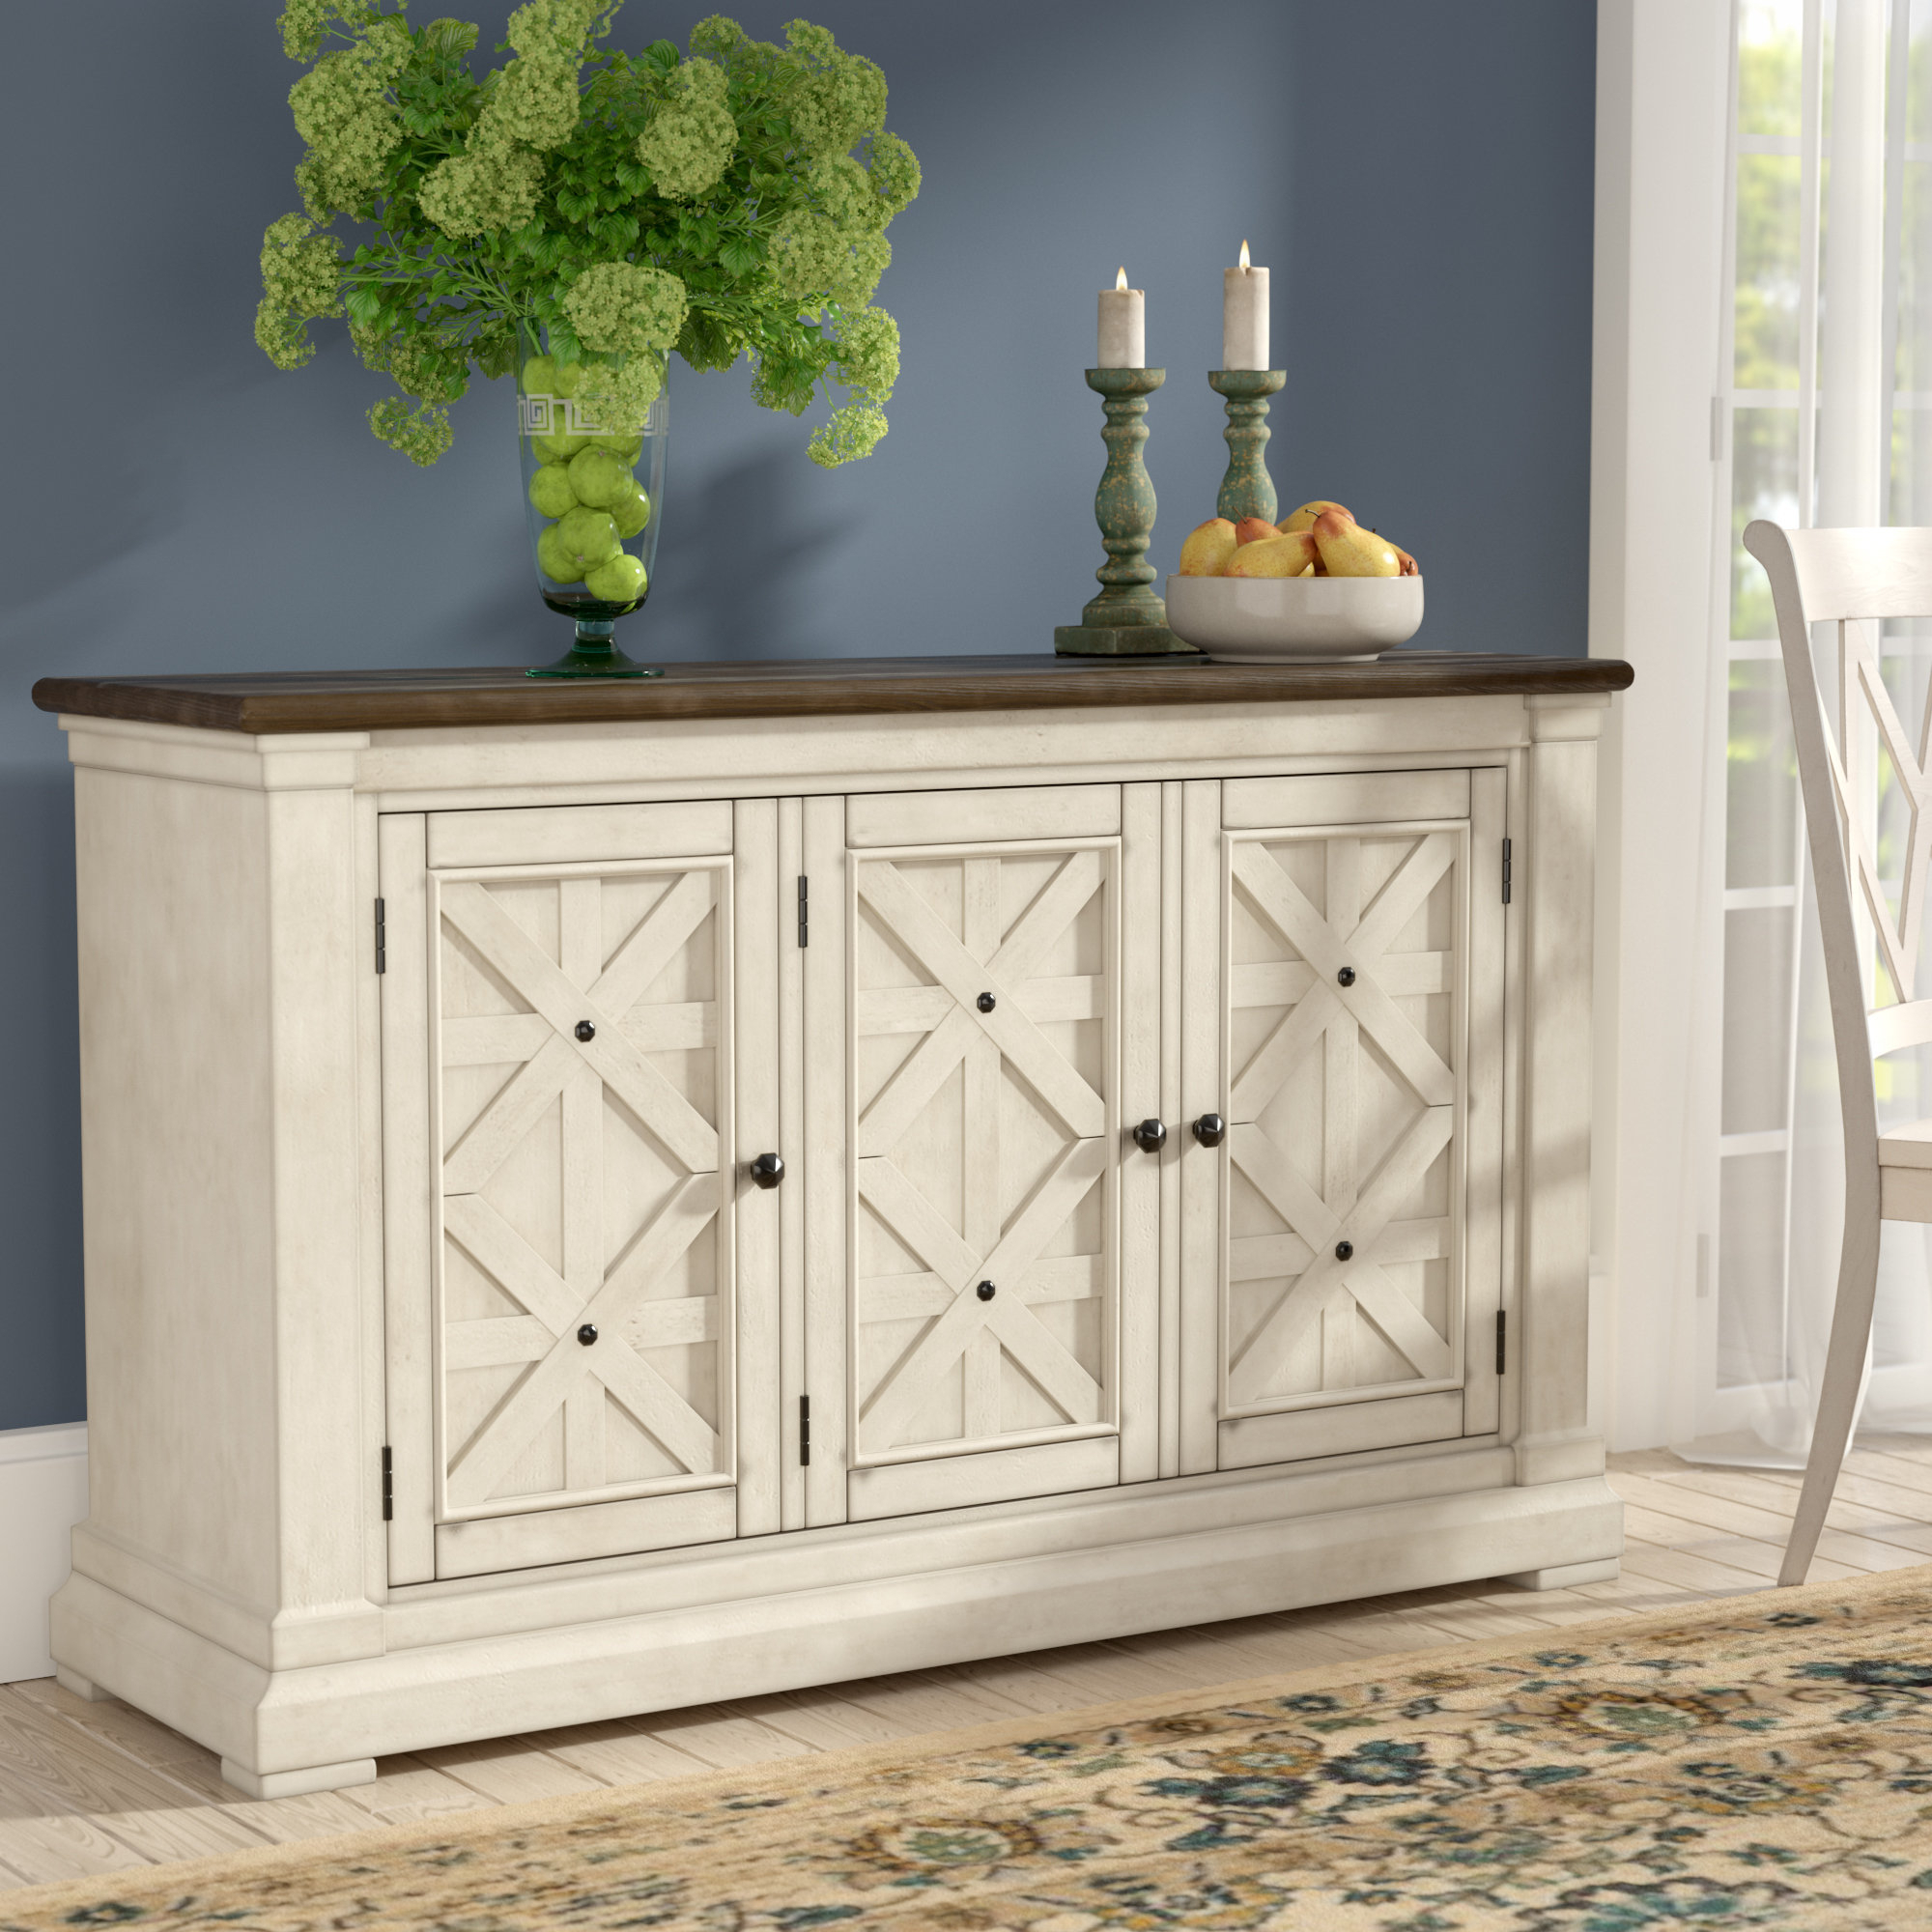 Alcott Hill Marsha Sideboard & Reviews | Wayfair With Regard To Rutherford Sideboards (View 11 of 30)